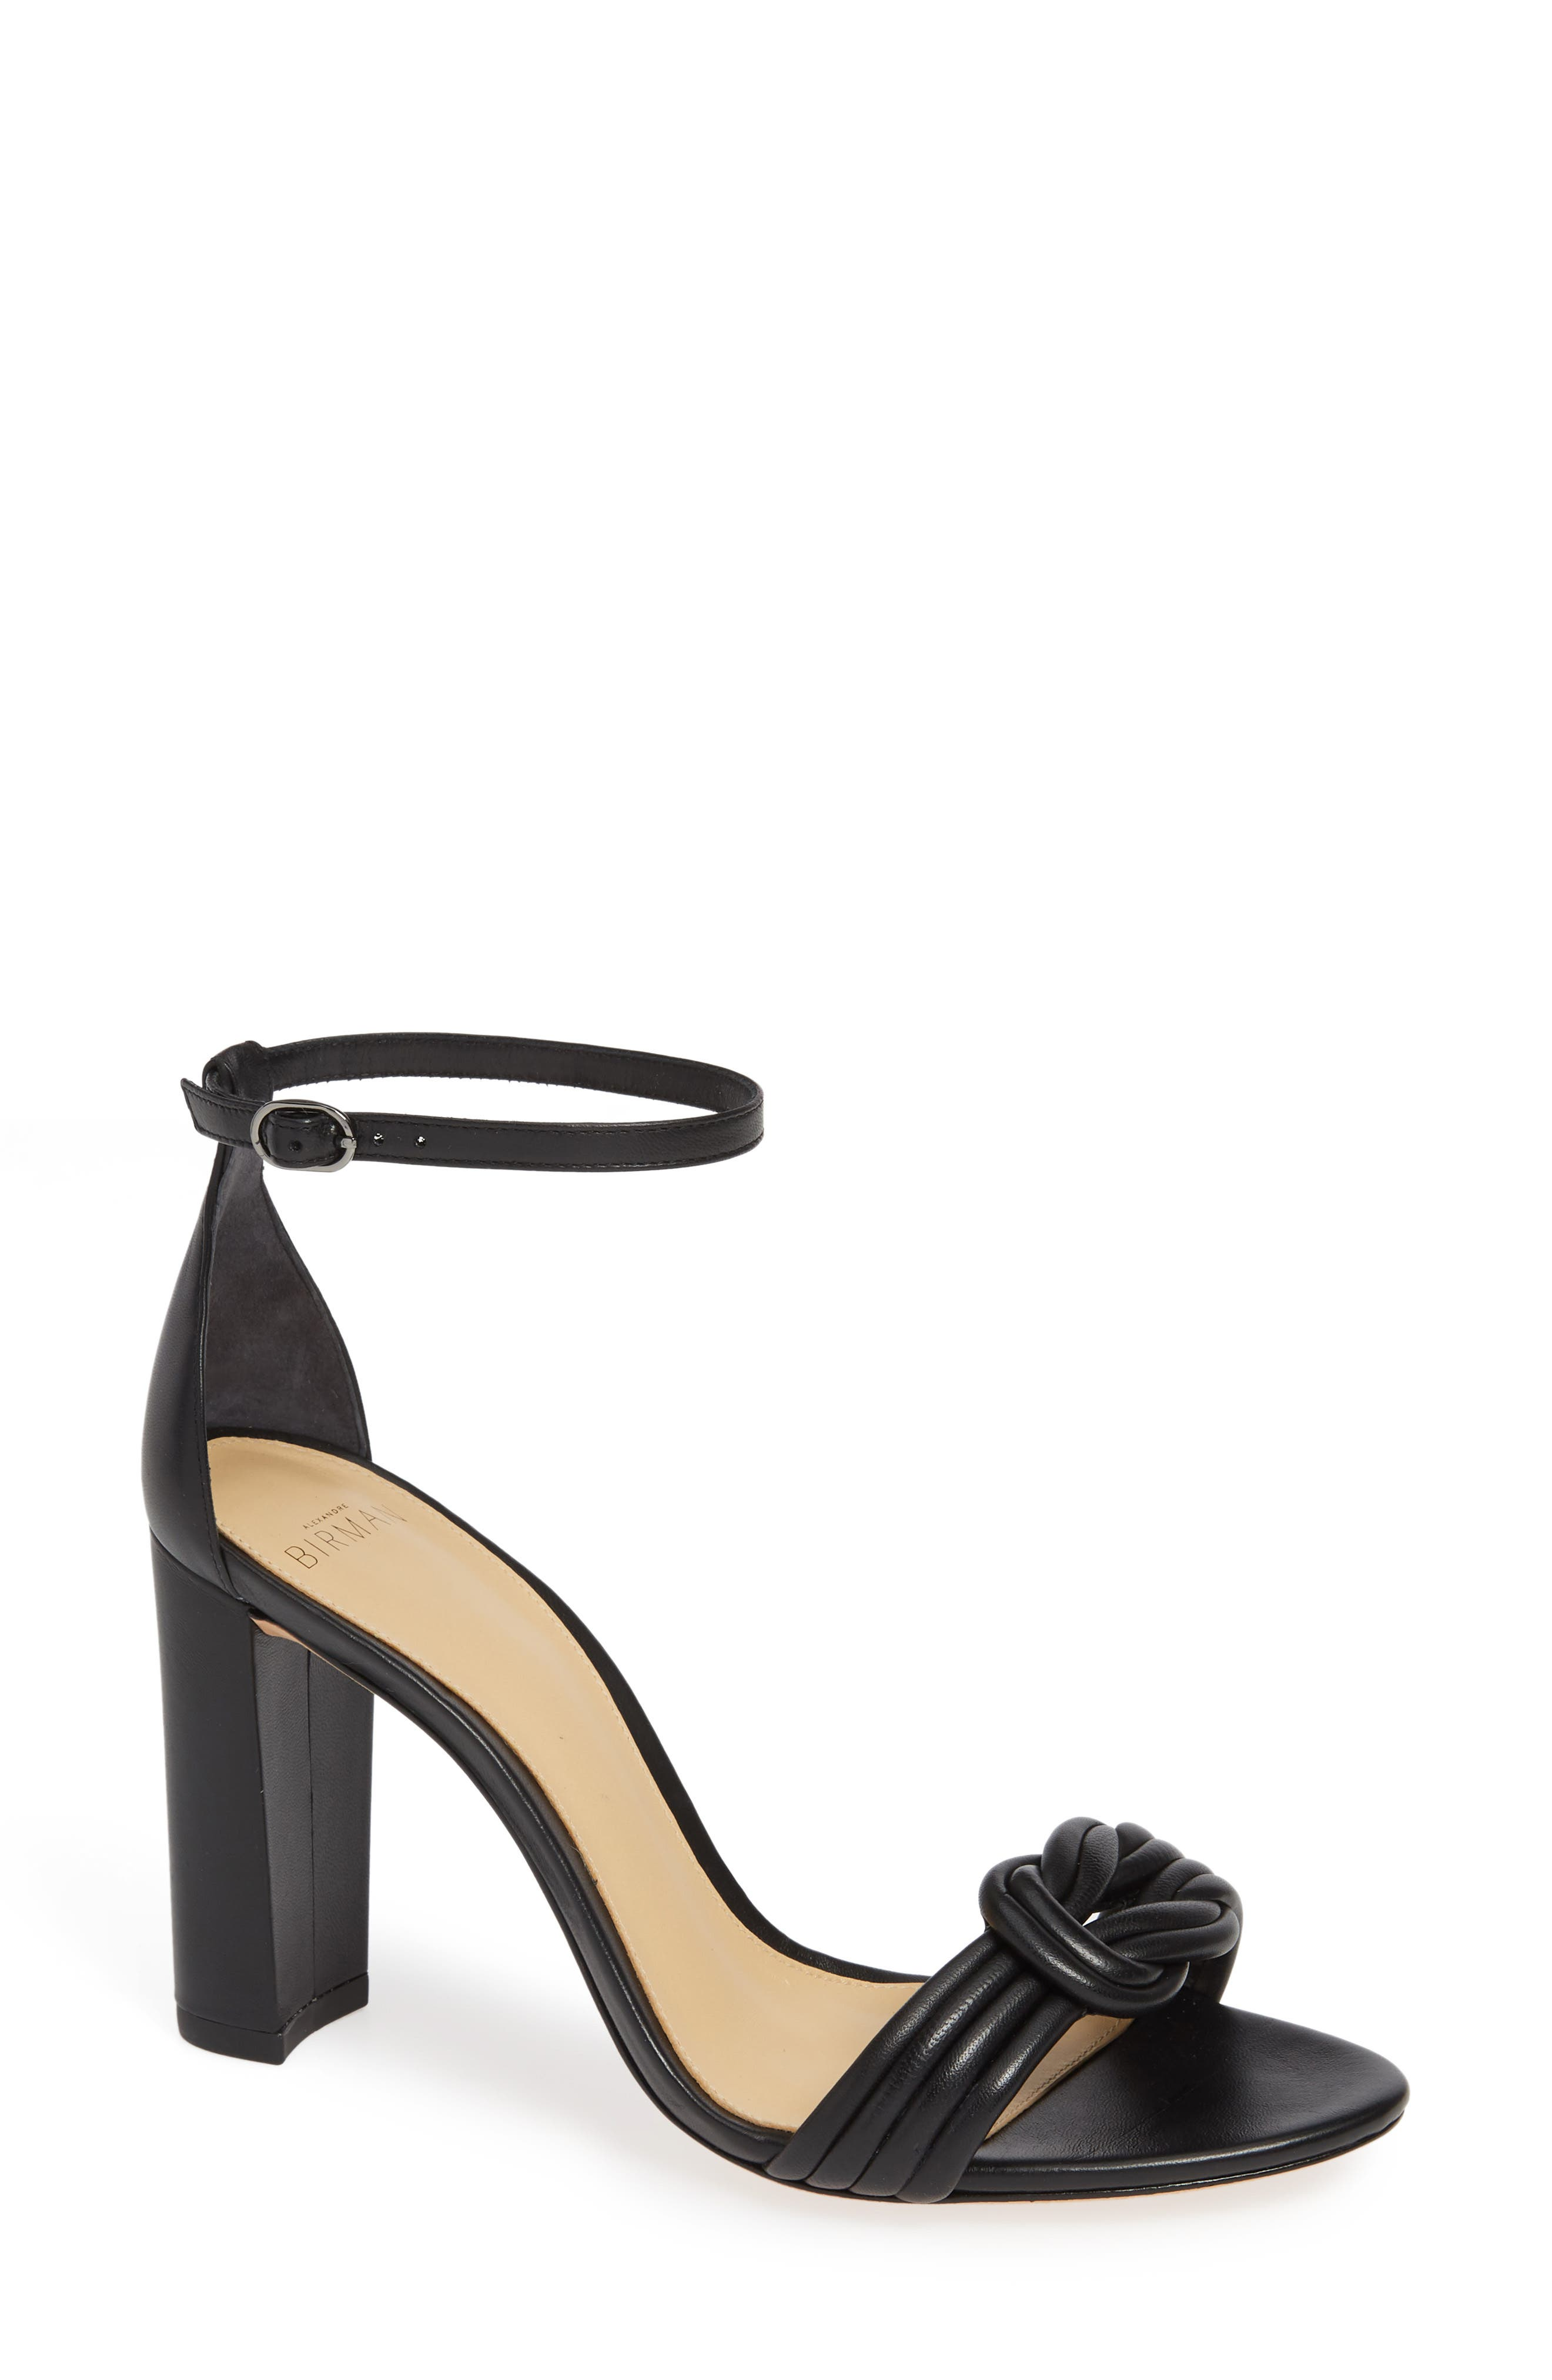 Chiara Knot Leather Sandals in Black Leather